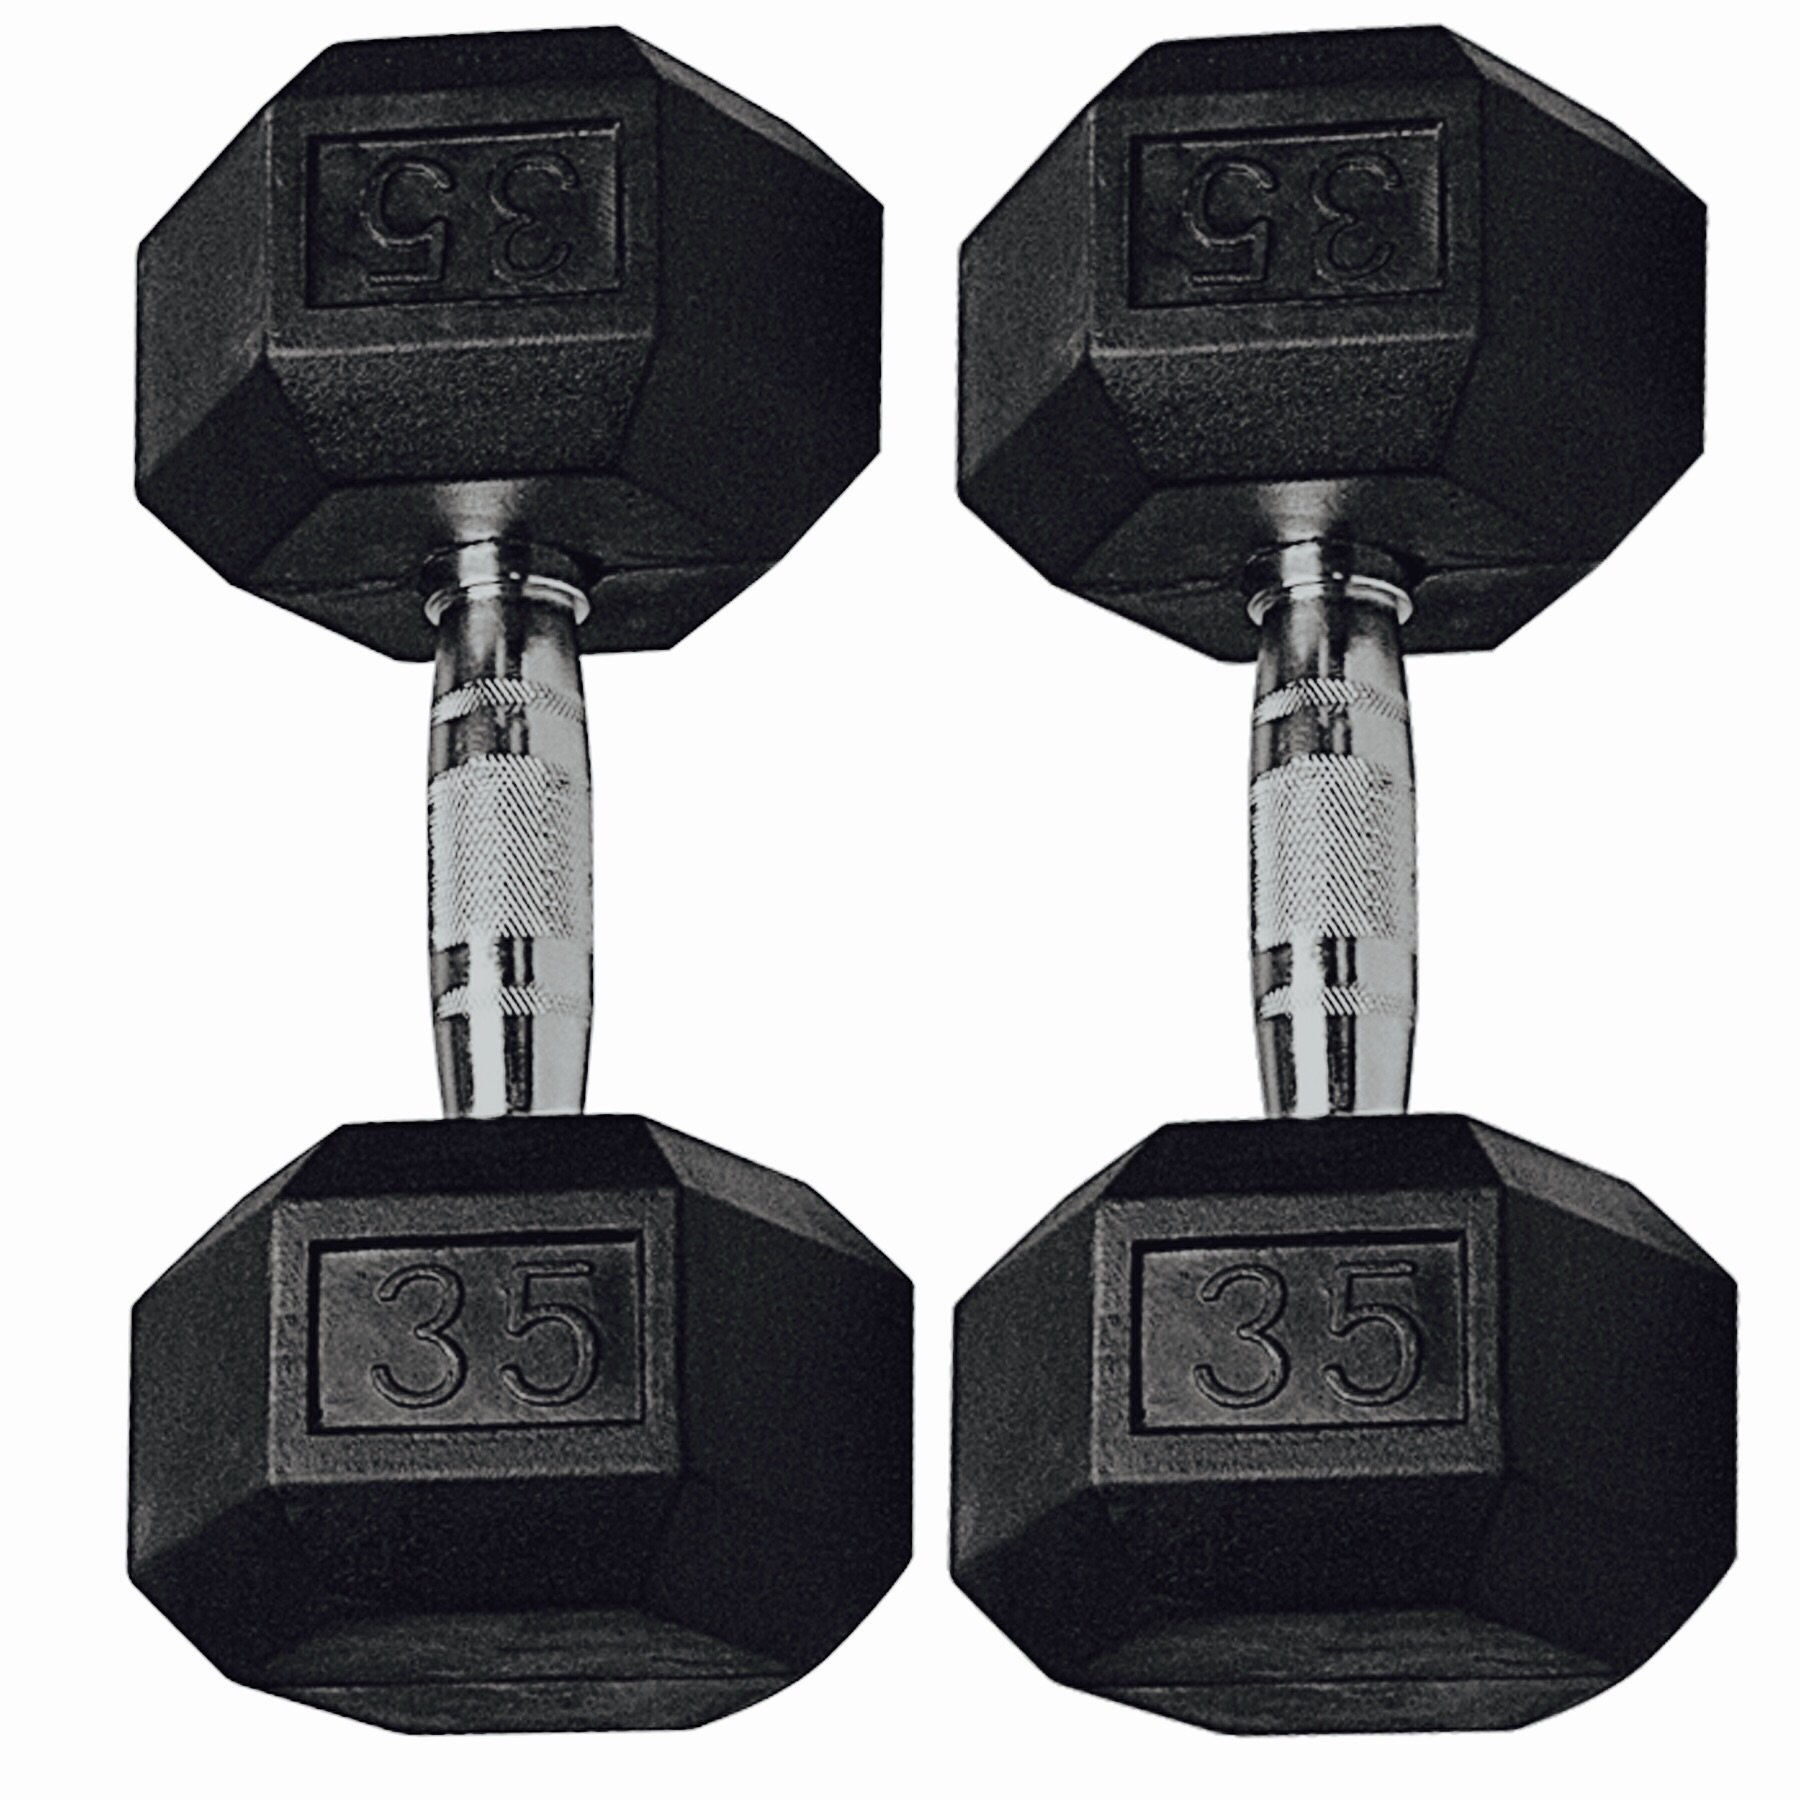 Gymenist Set of 2 Hex Rubber Dumbbell with Metal Handles, Pair of 2 Heavy Dumbbell (35 LBs )